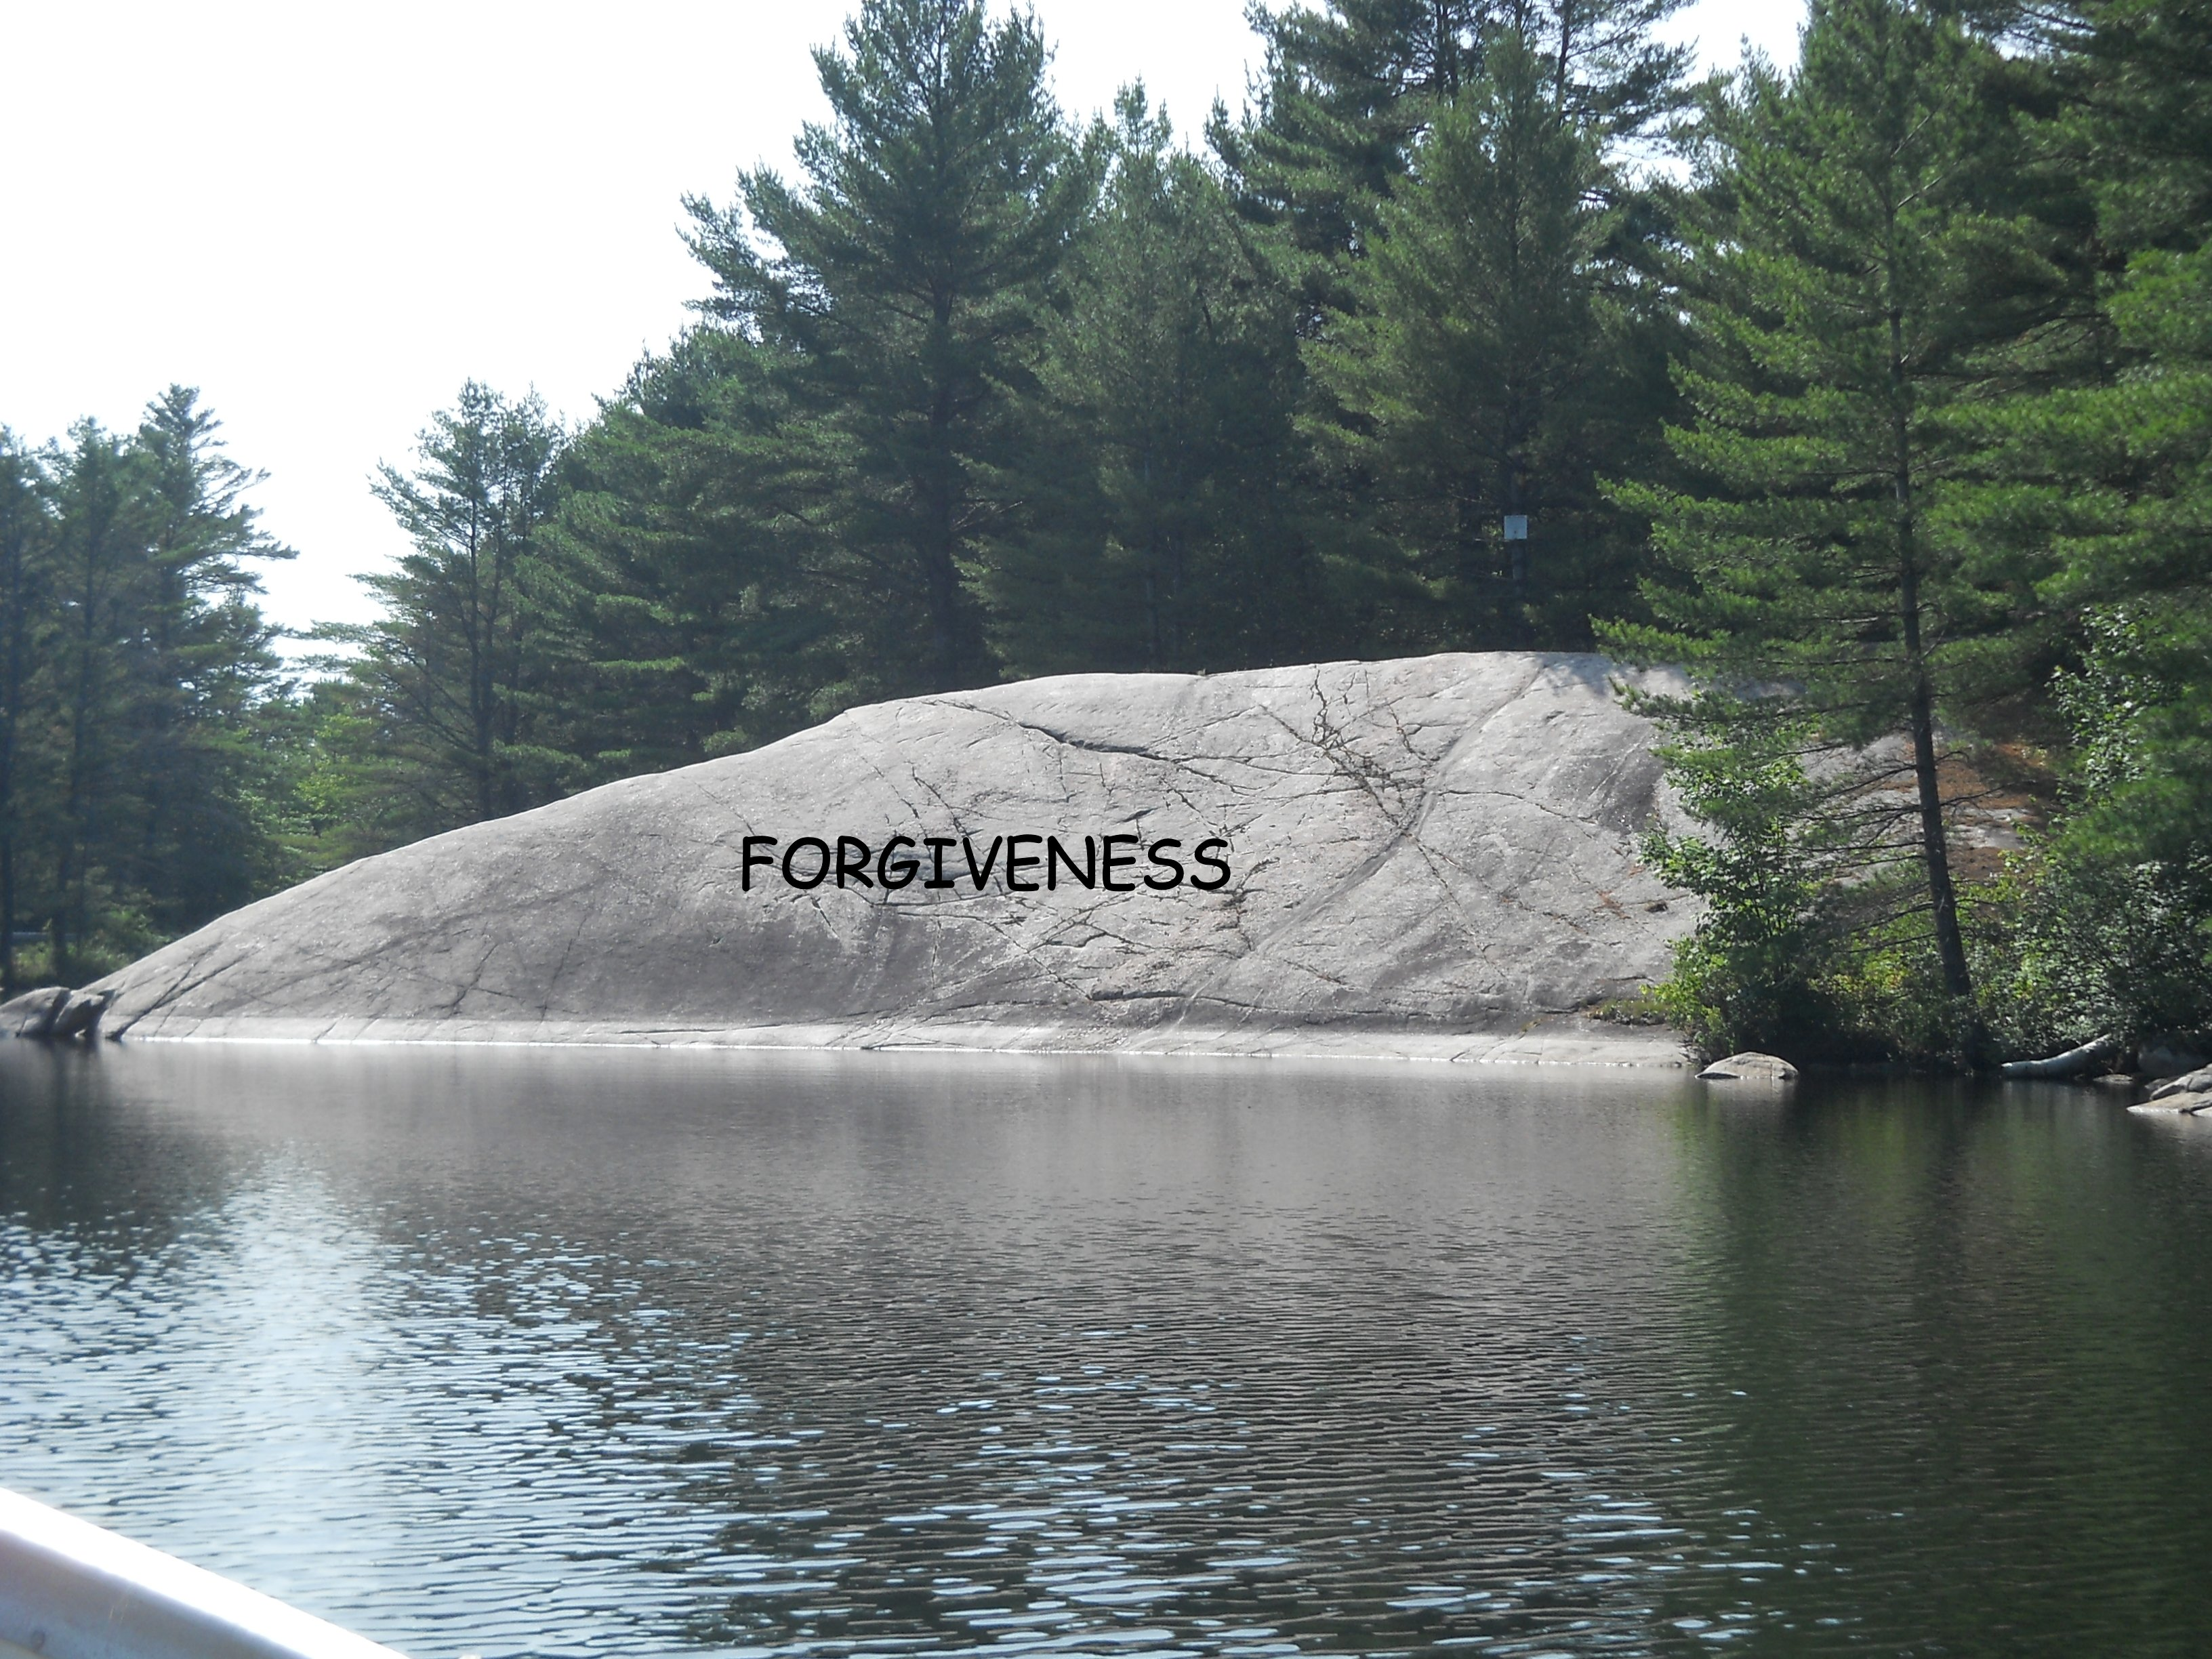 FORGIVENESS ? a BIG one for many people